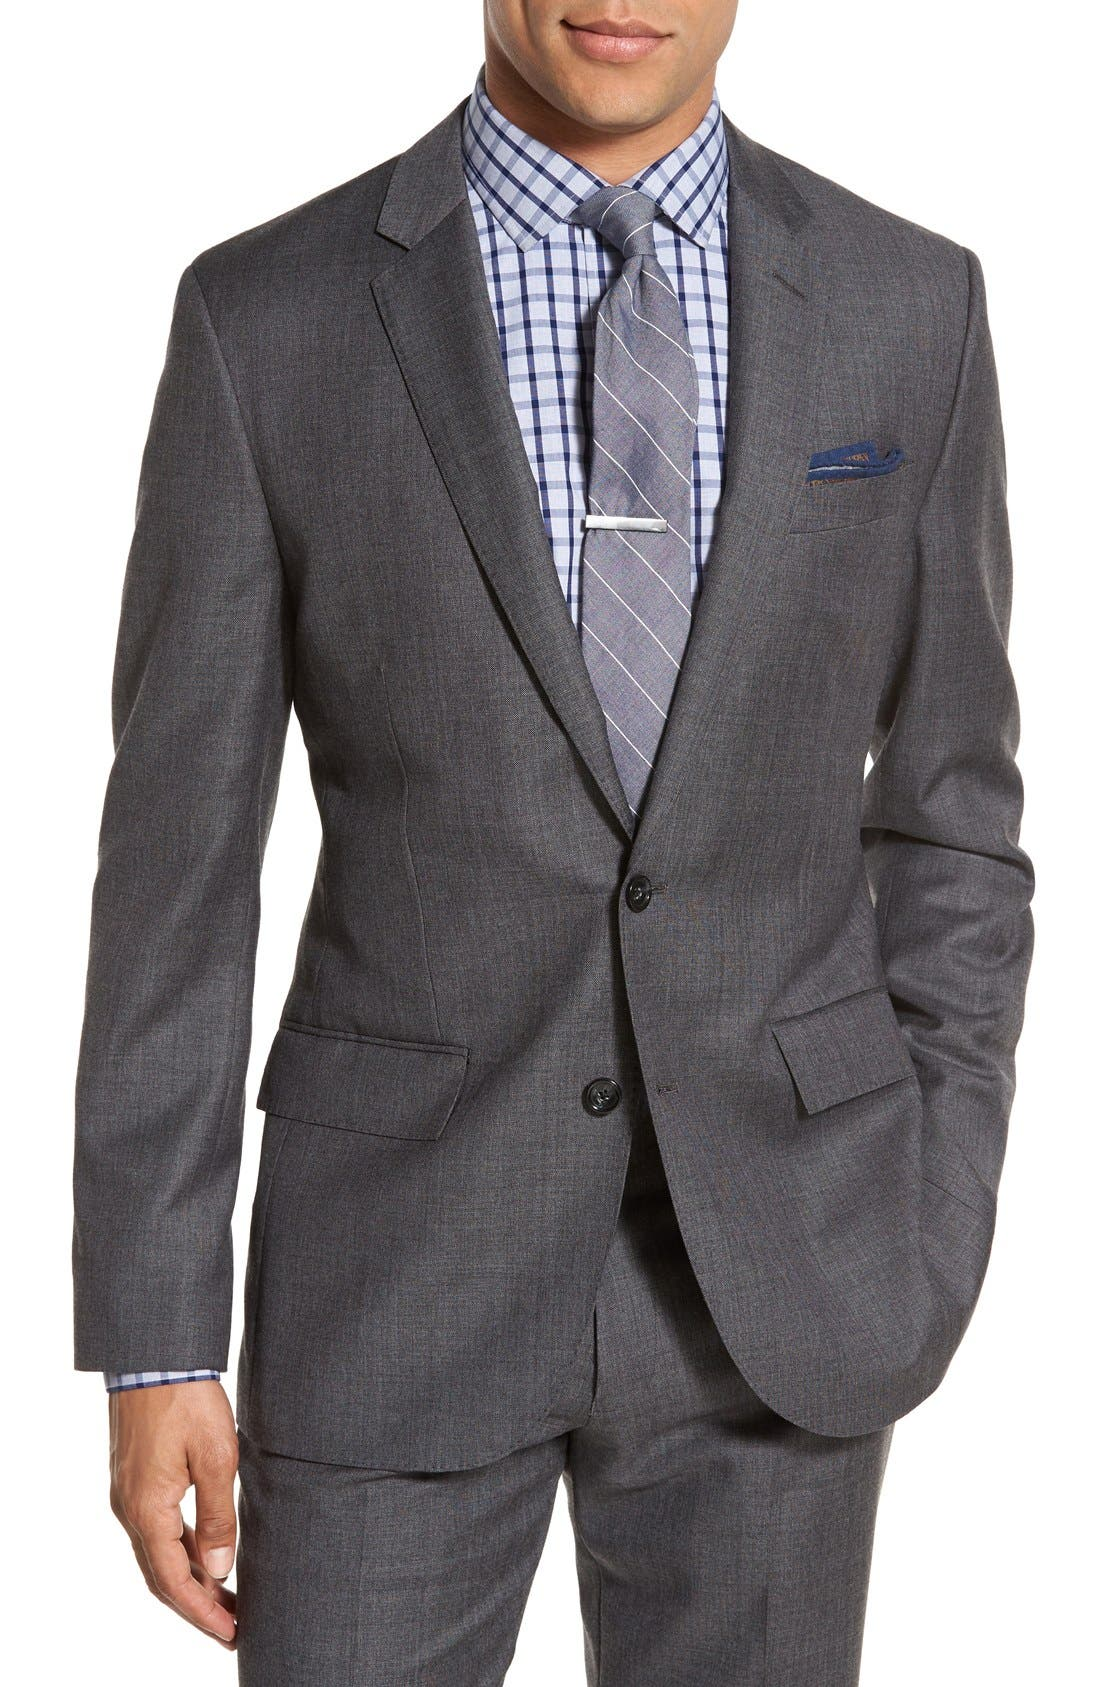 J.Crew Ludlow Trim Fit Solid Wool Sport Coat